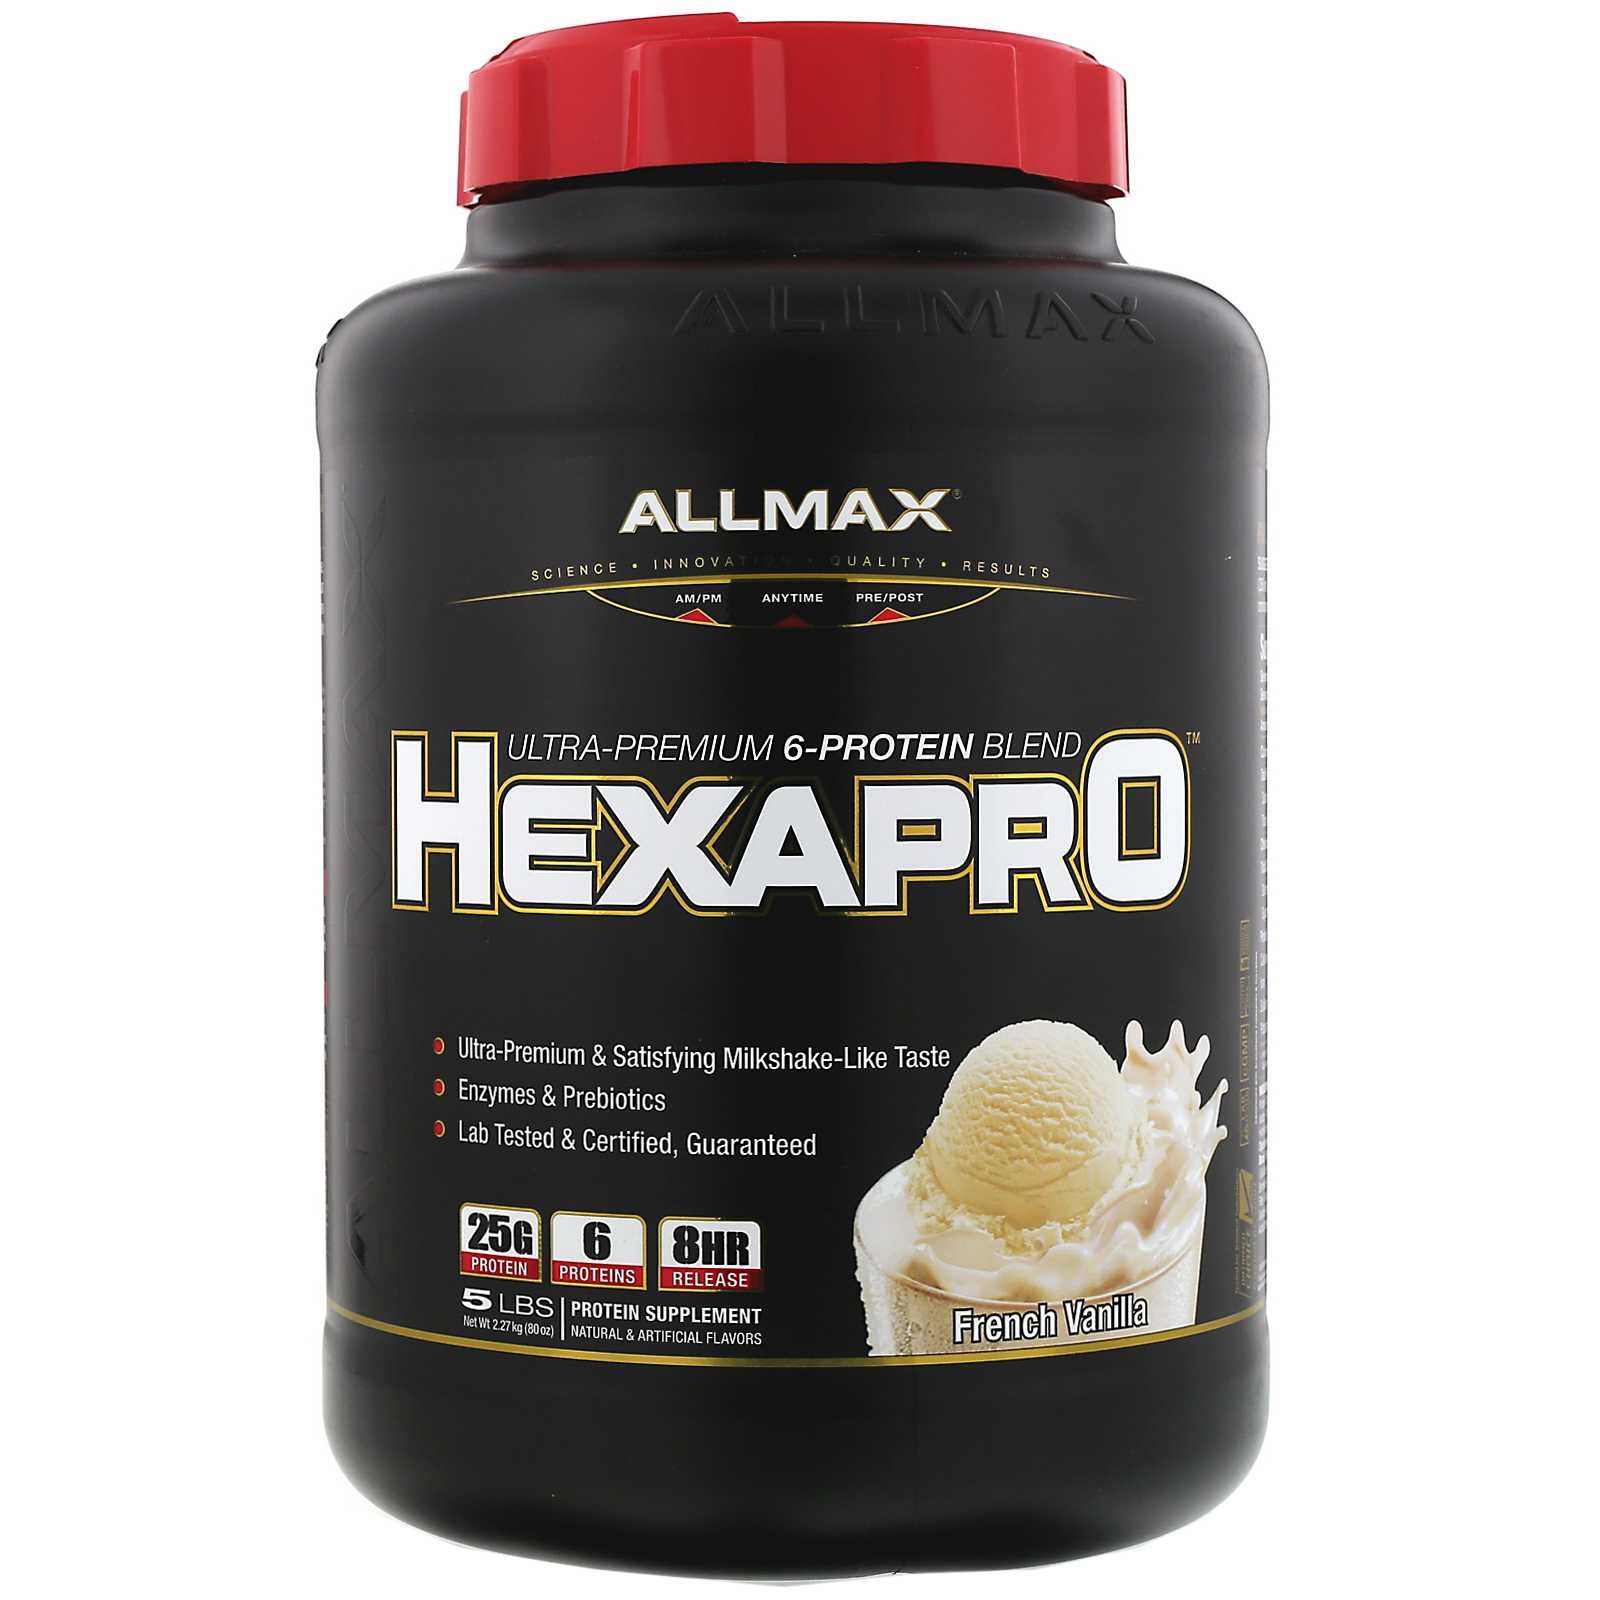 can i use hexapro on a keto diet